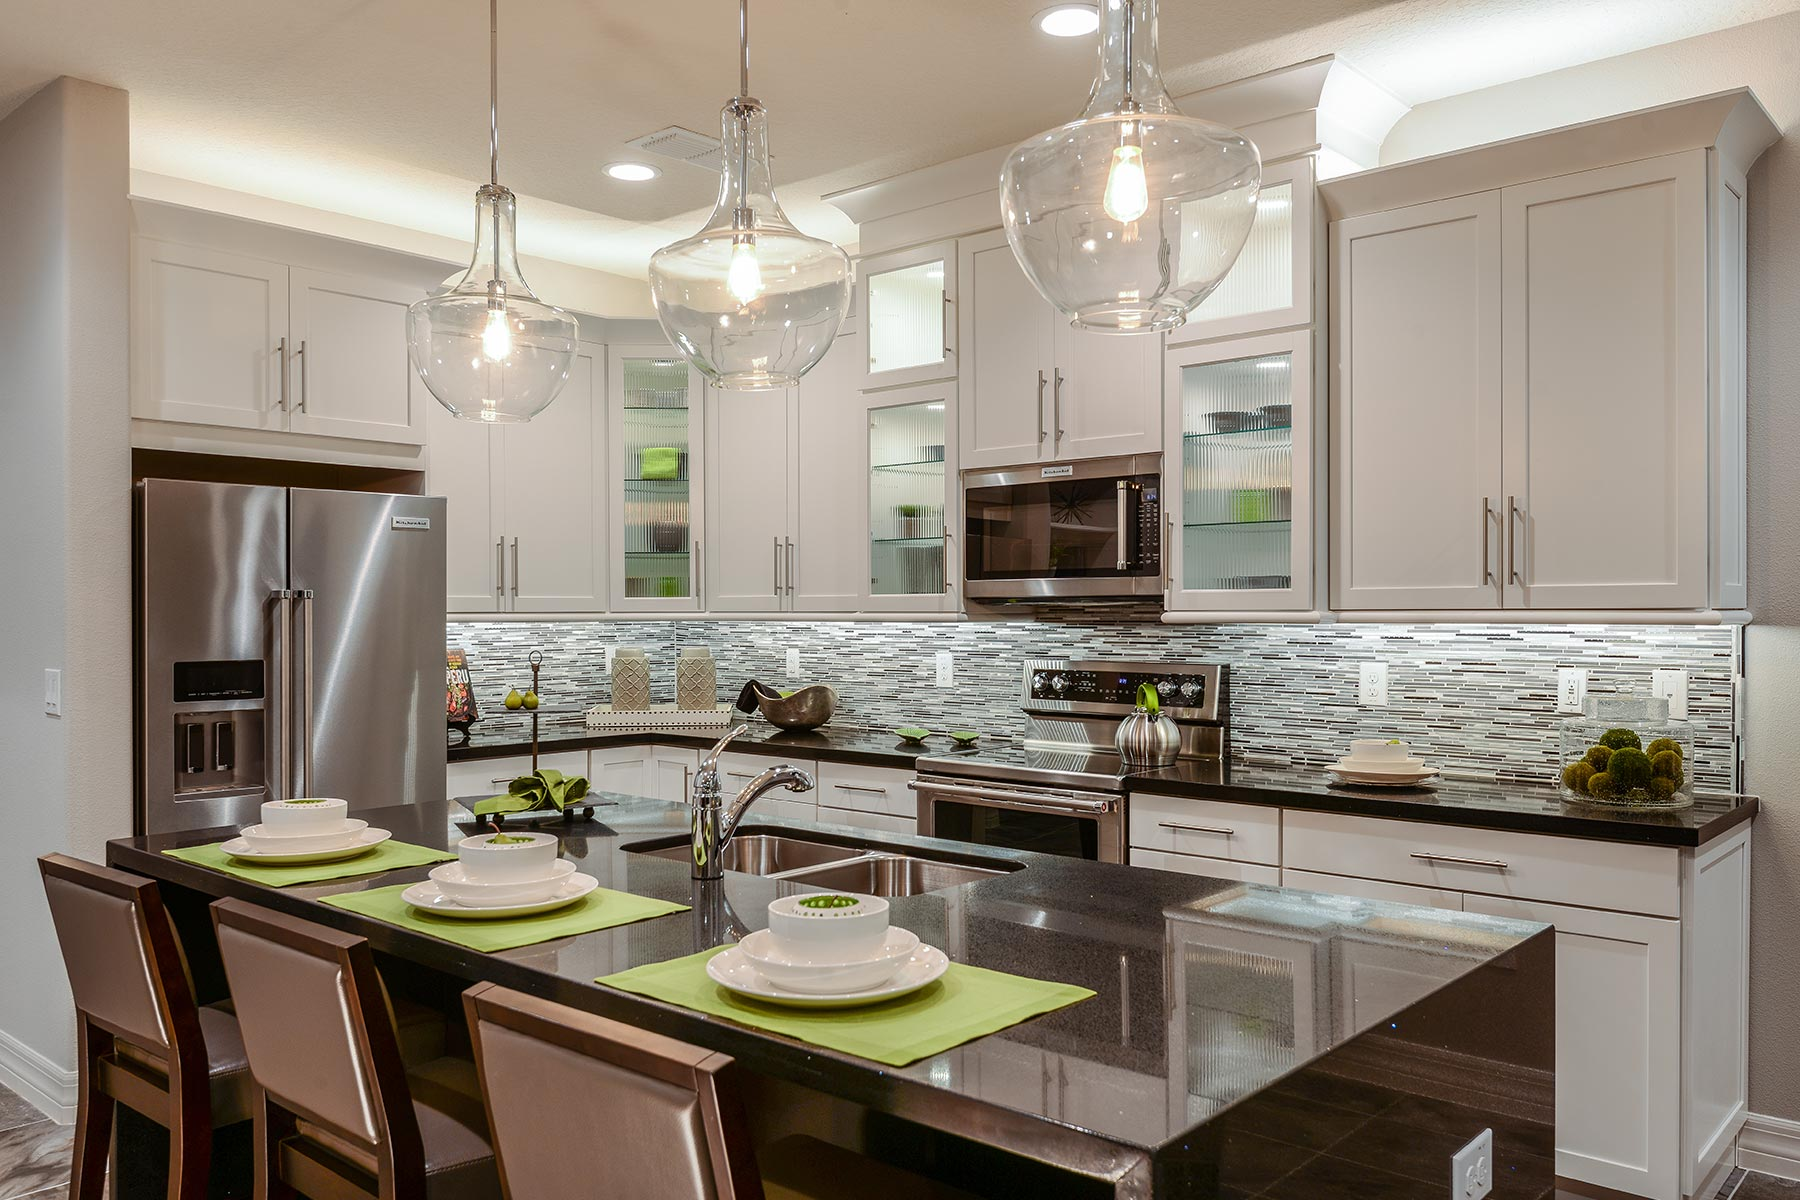 Tapestry Kitchen in Kissimmee Florida by Mattamy Homes